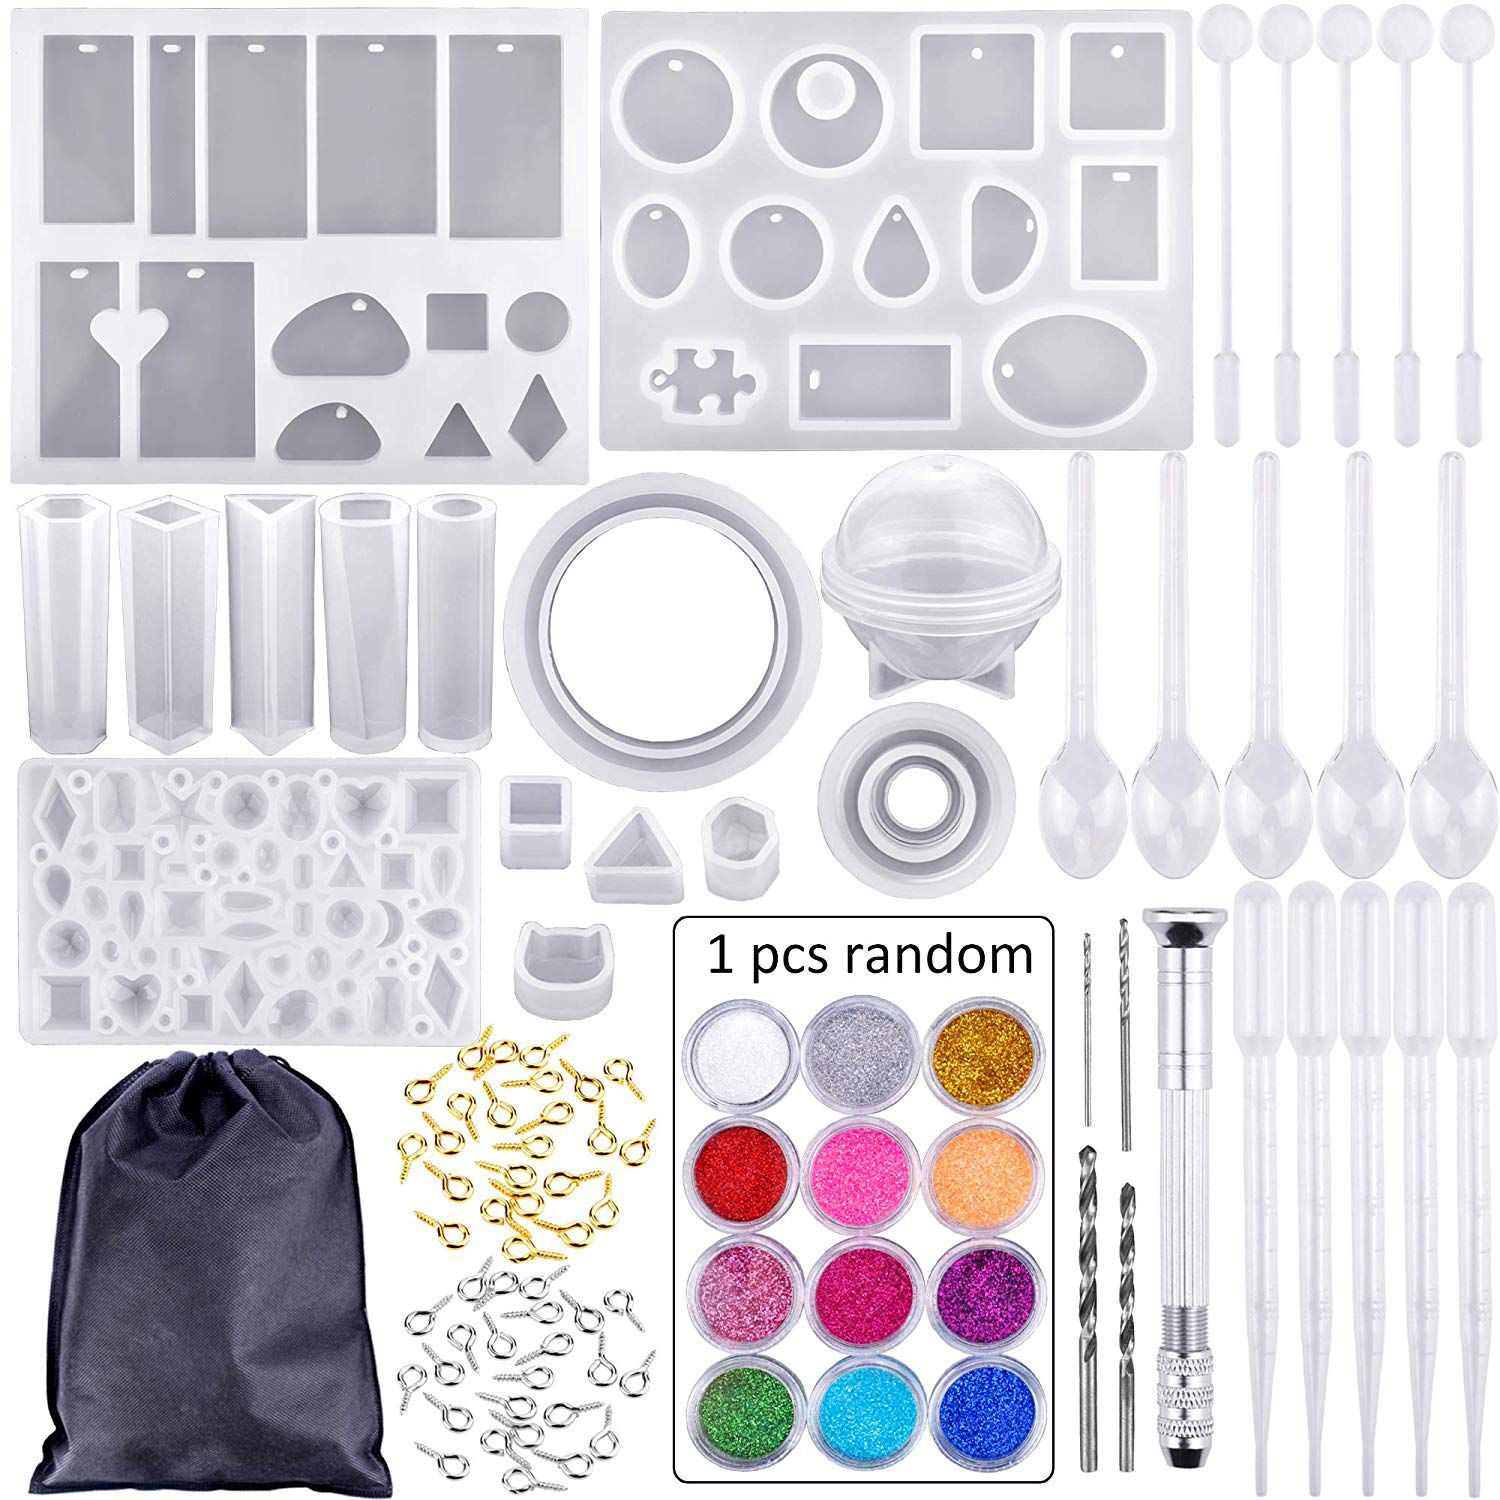 83 Pieces Silicone Casting Molds And Tools Set With A Black Storage Bag For Diy Jewelry Craft Making(China)